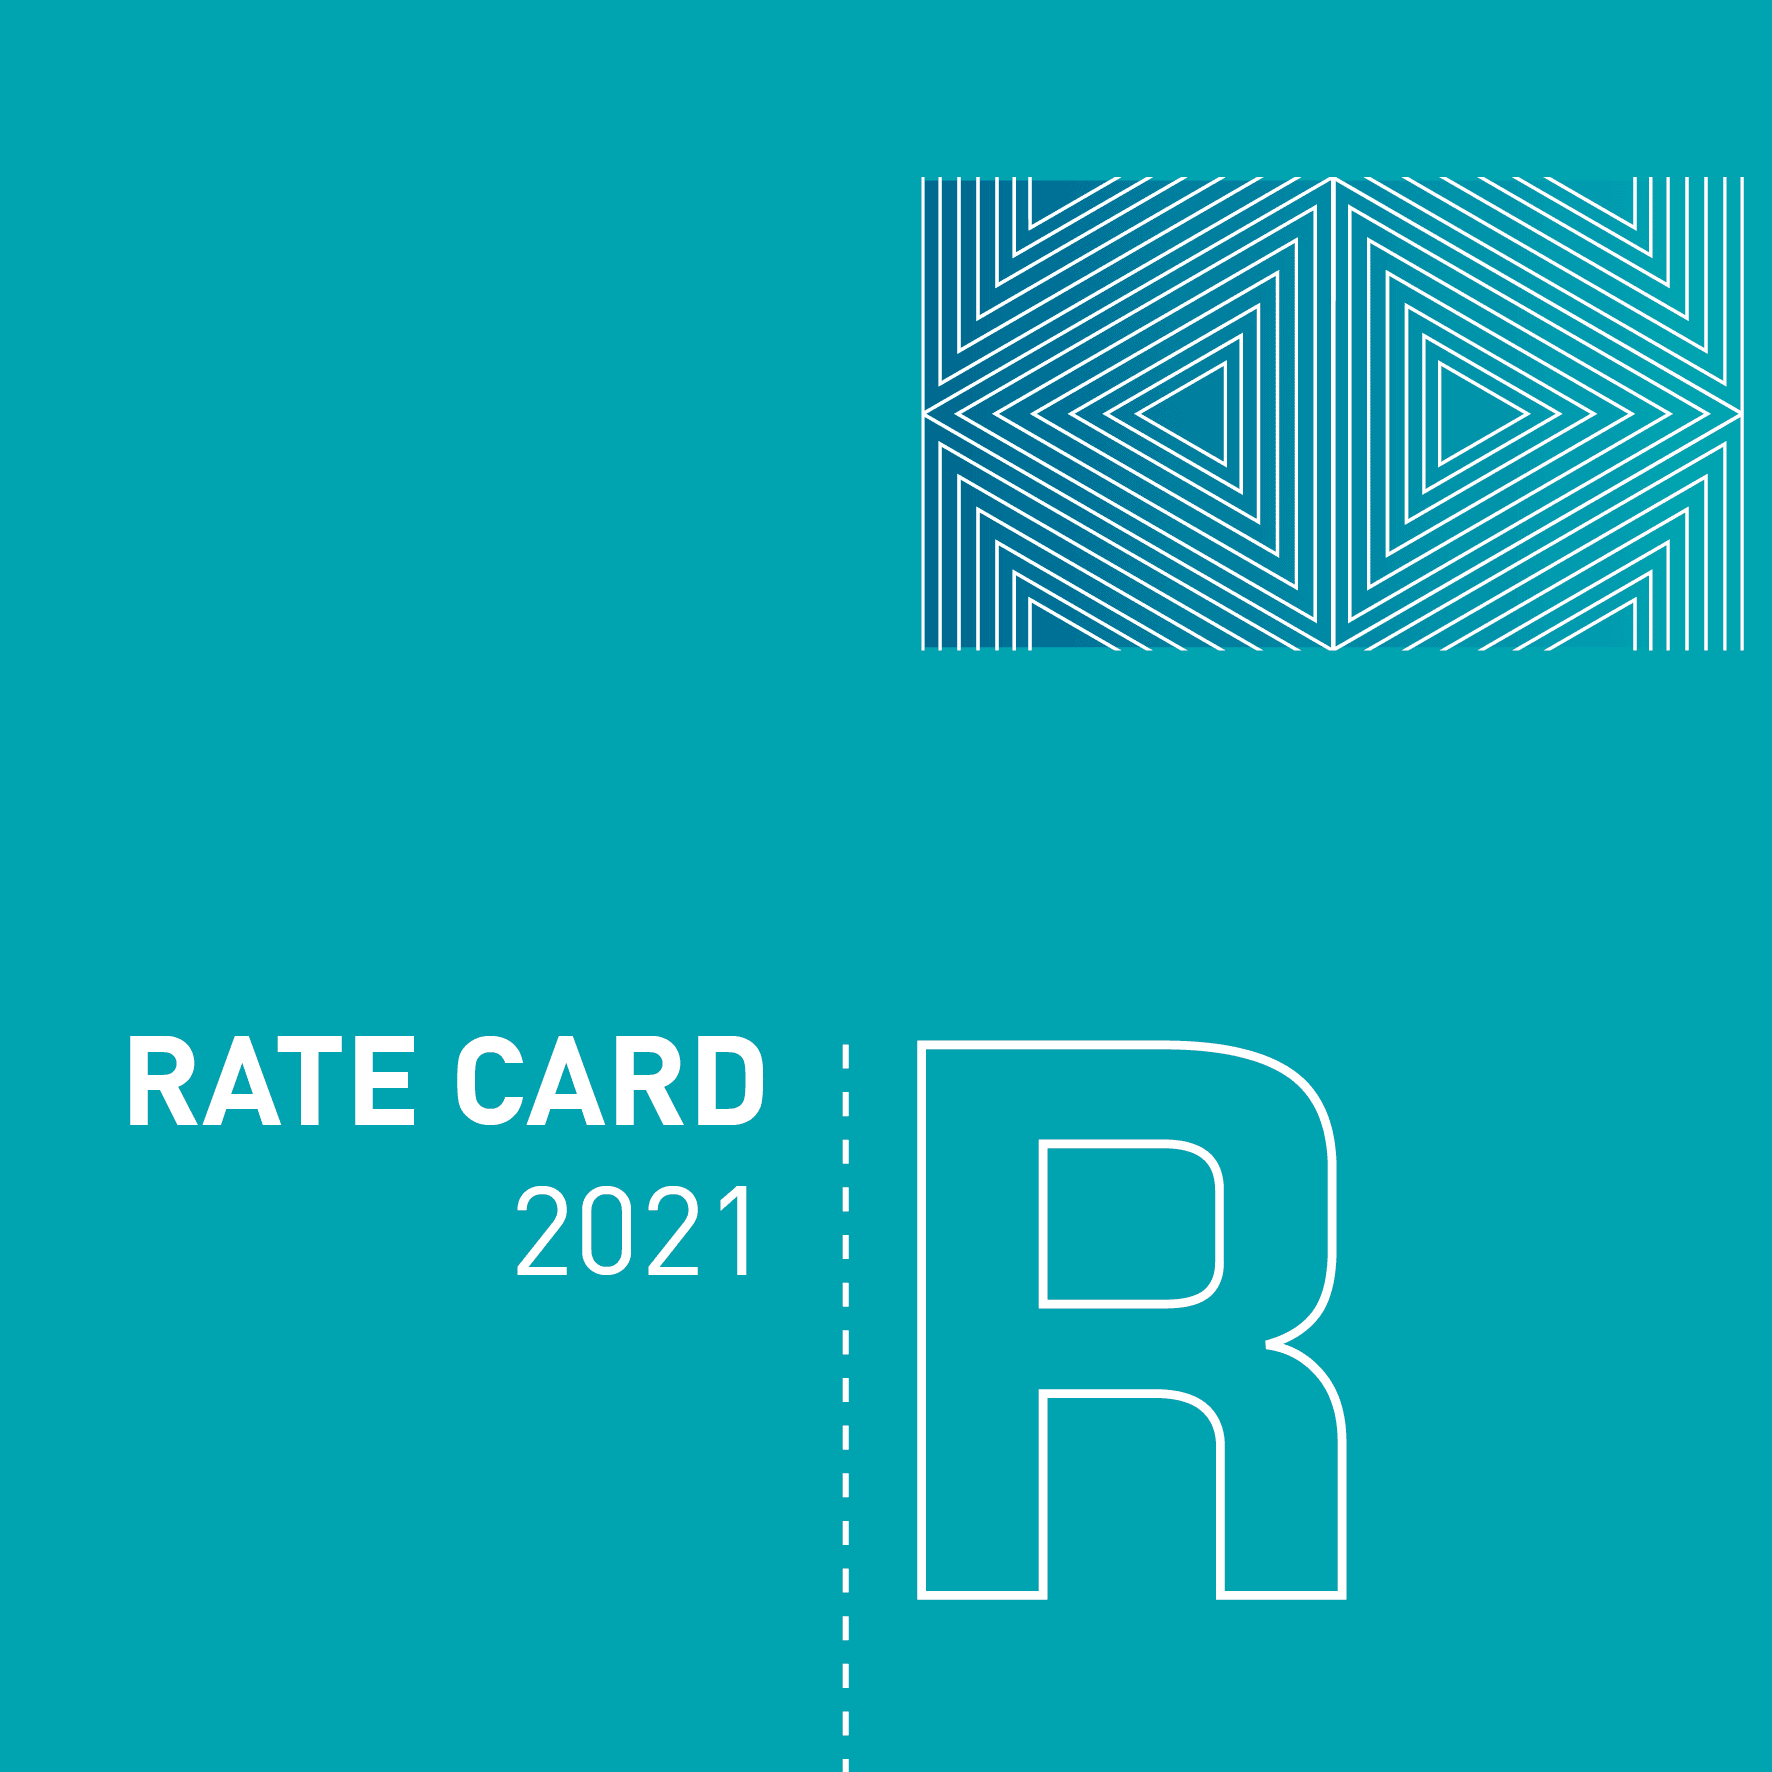 2021 Rate Card